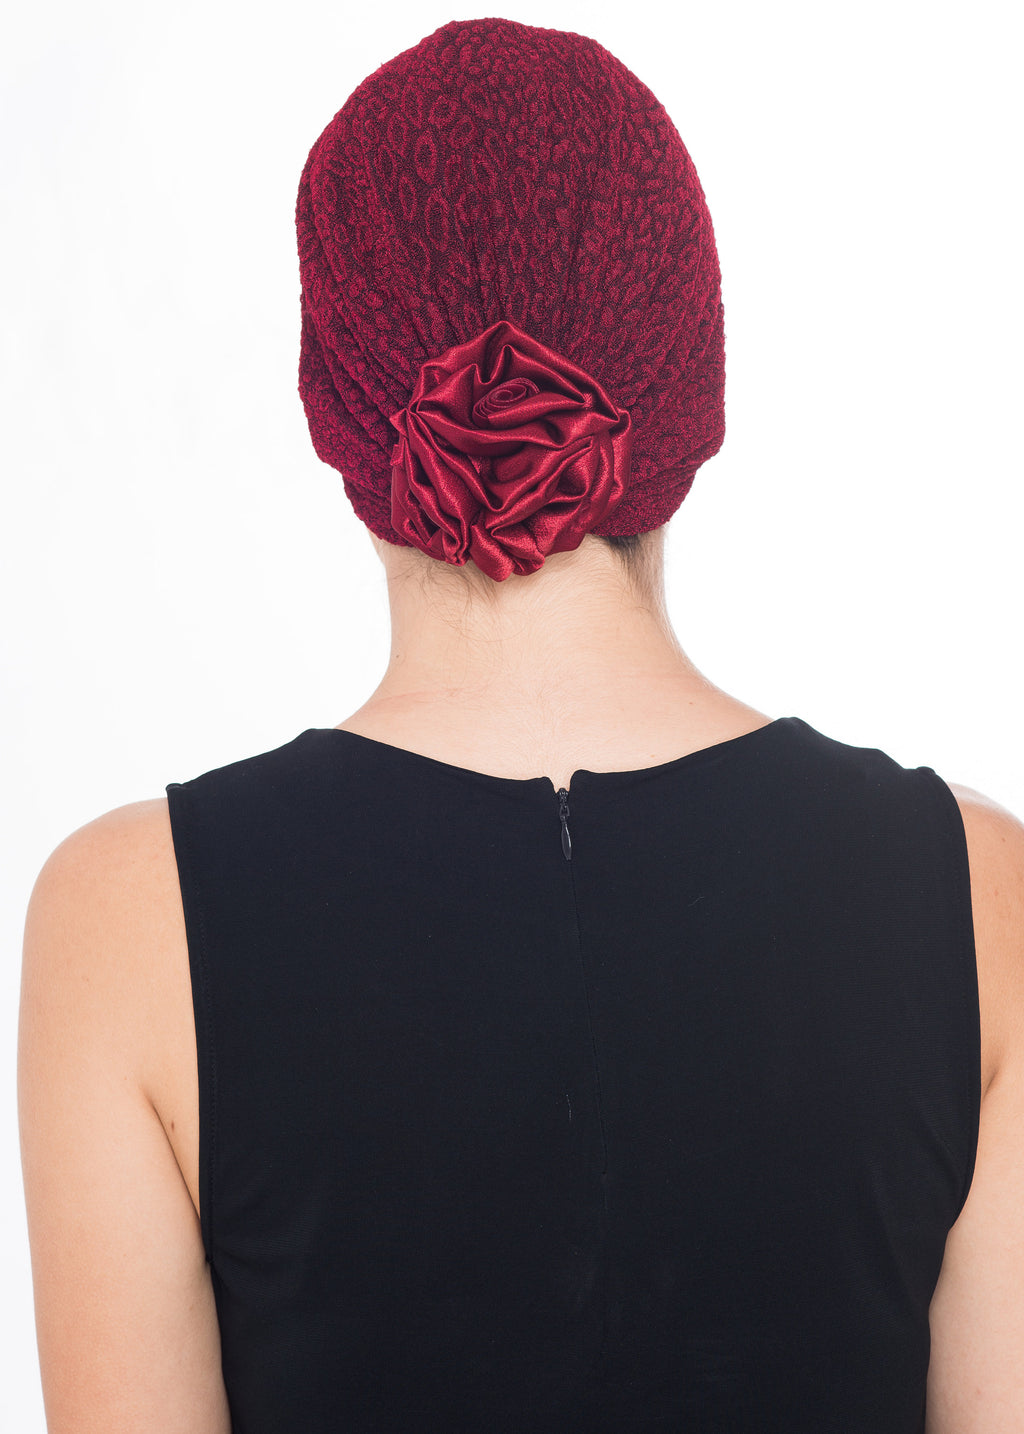 Rose Headwear - Burgundy (Exclusive)